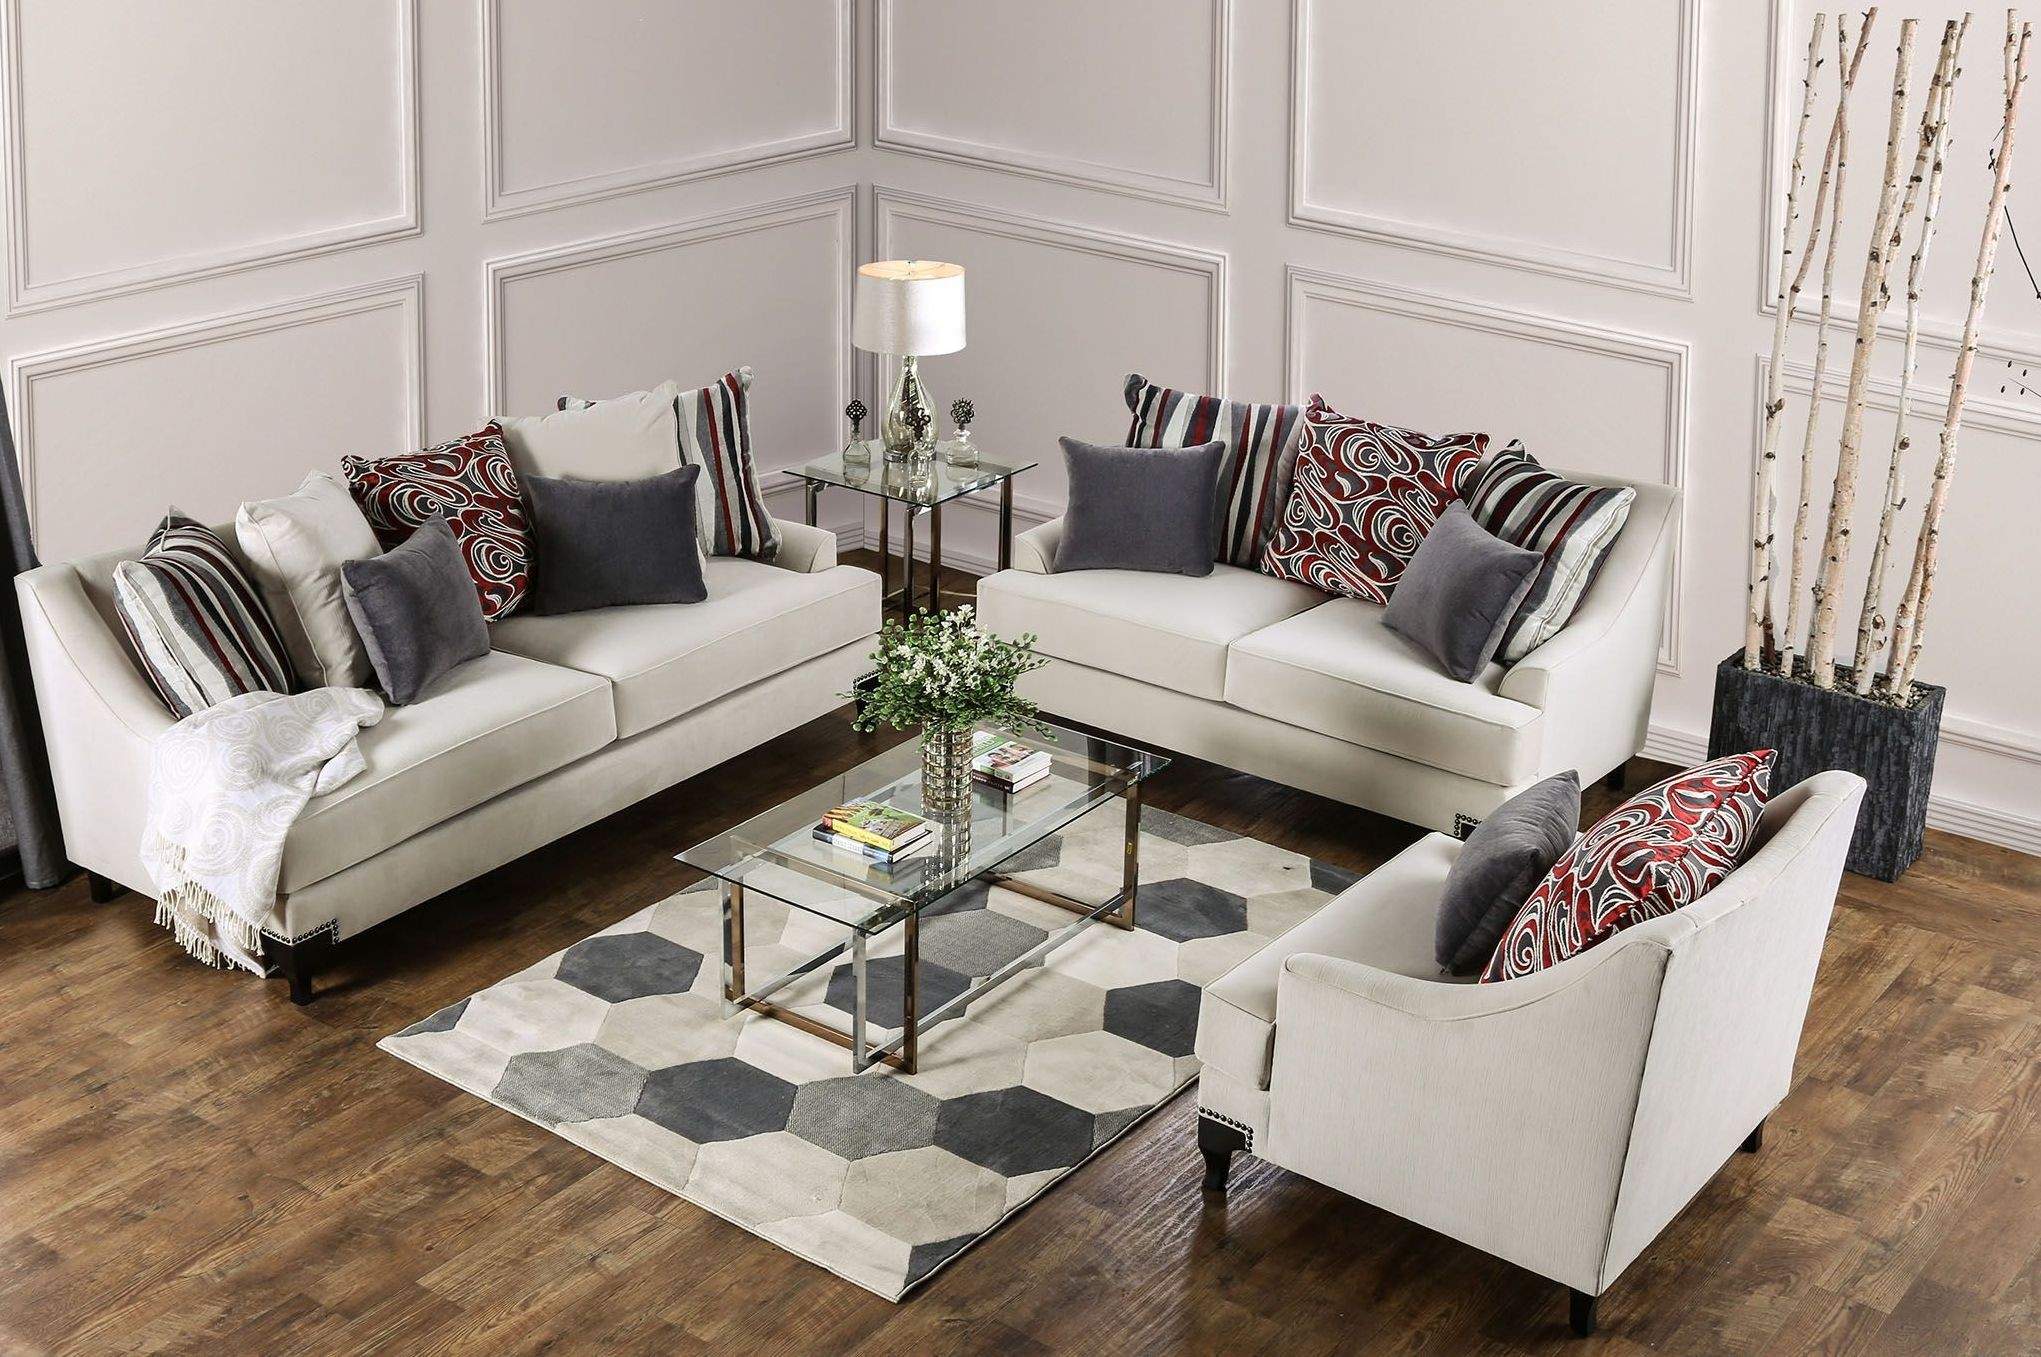 viscontti ivory upholstered living room set from furniture of america coleman furniture. Black Bedroom Furniture Sets. Home Design Ideas